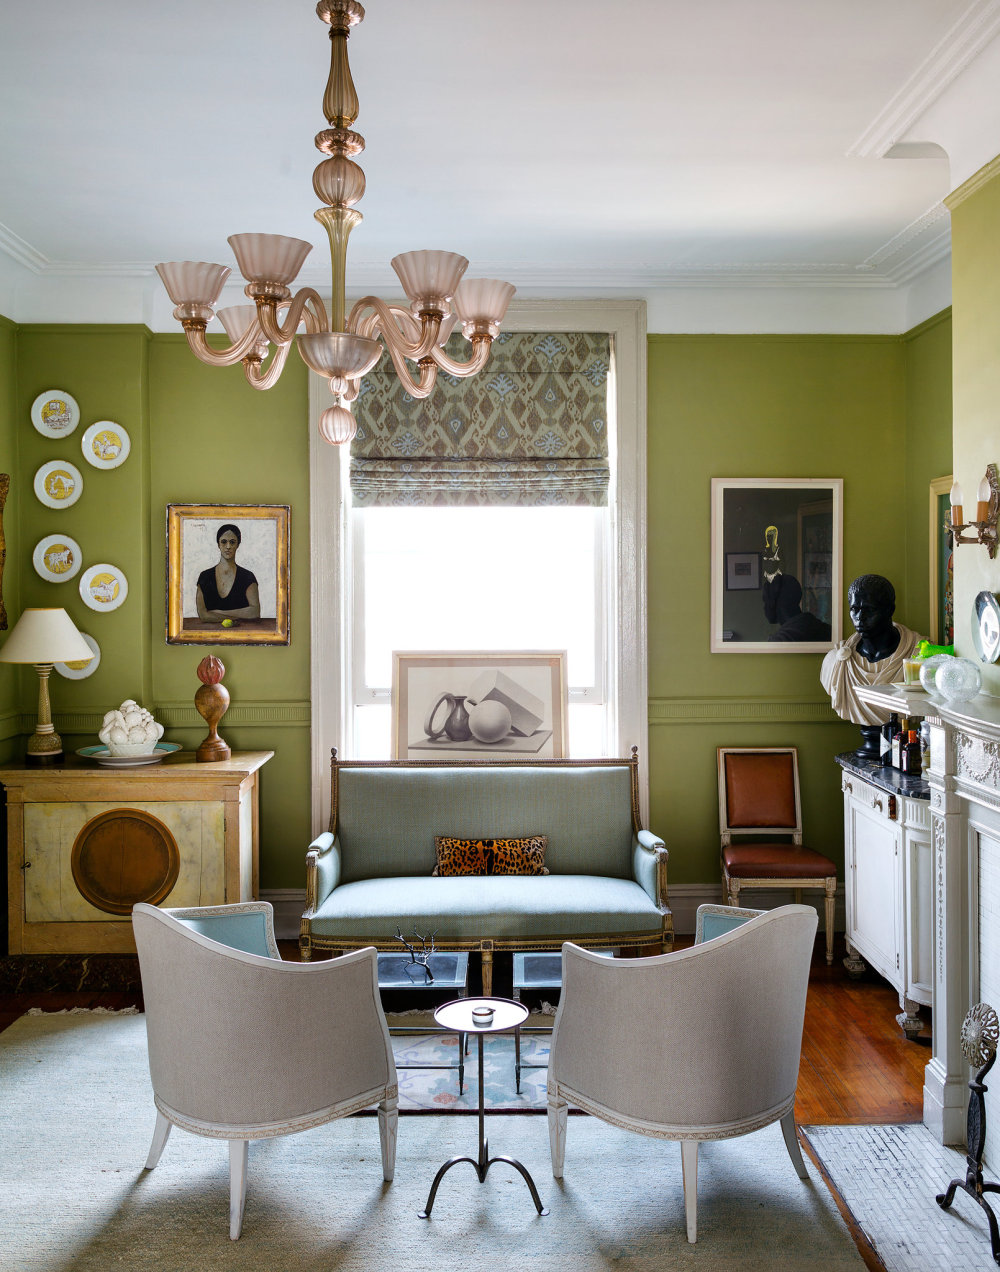 Decor inspiration at home with sheila bridges harlem - Interior decorations for bedrooms ...